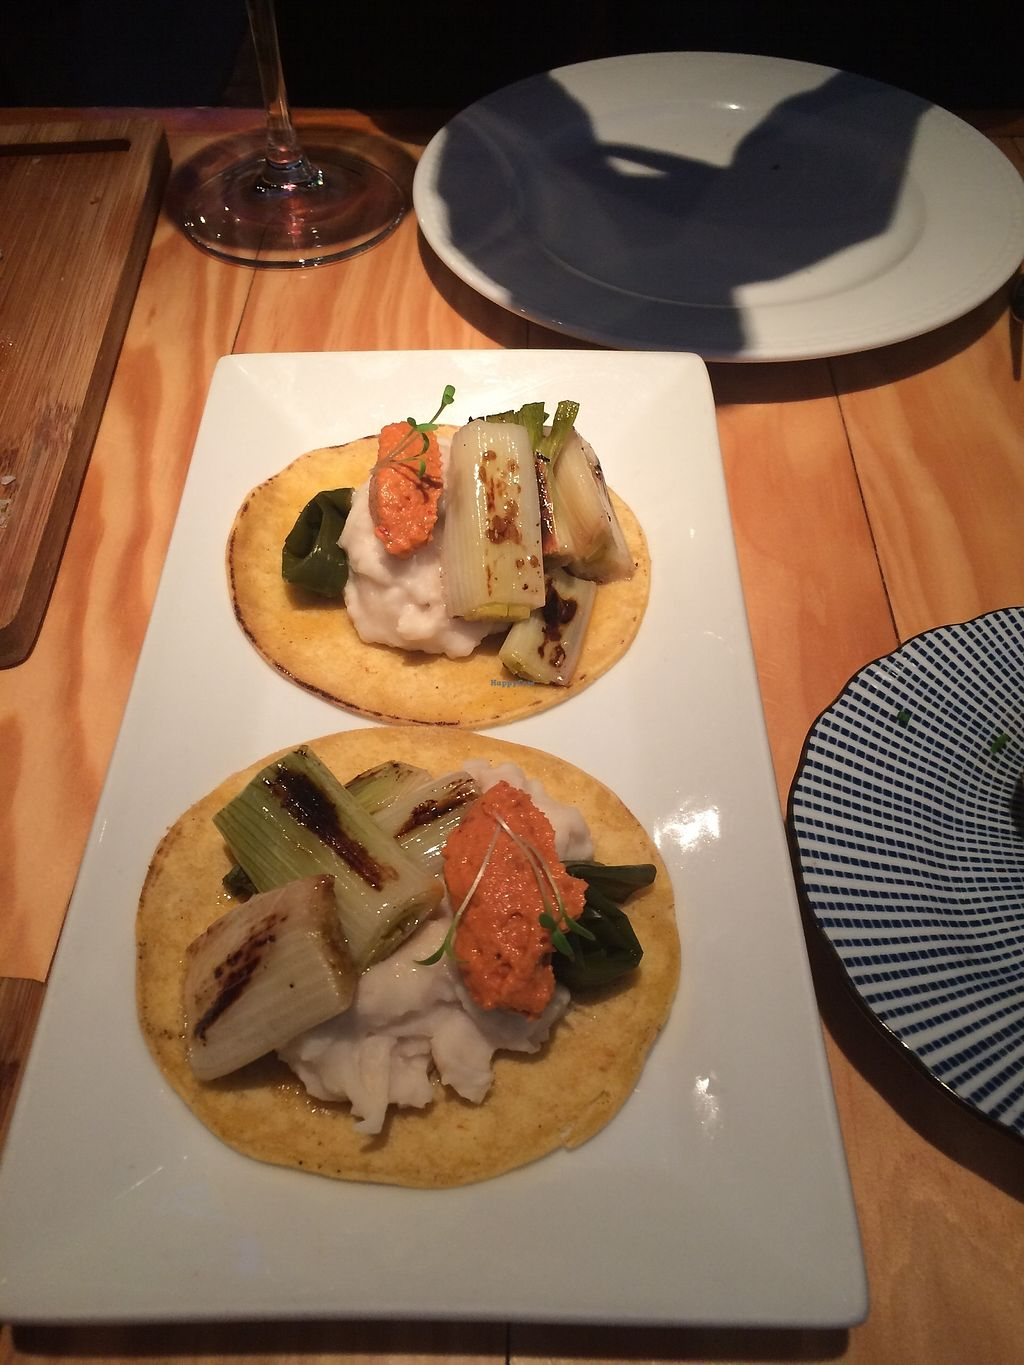 "Photo of Rasoterra Bistrot Vegetaria  by <a href=""/members/profile/sabrinajh"">sabrinajh</a> <br/>Vegan tacos - white bean purée, grilled vegetables. Not the best thing they had on the menu.  <br/> December 31, 2017  - <a href='/contact/abuse/image/37964/341431'>Report</a>"